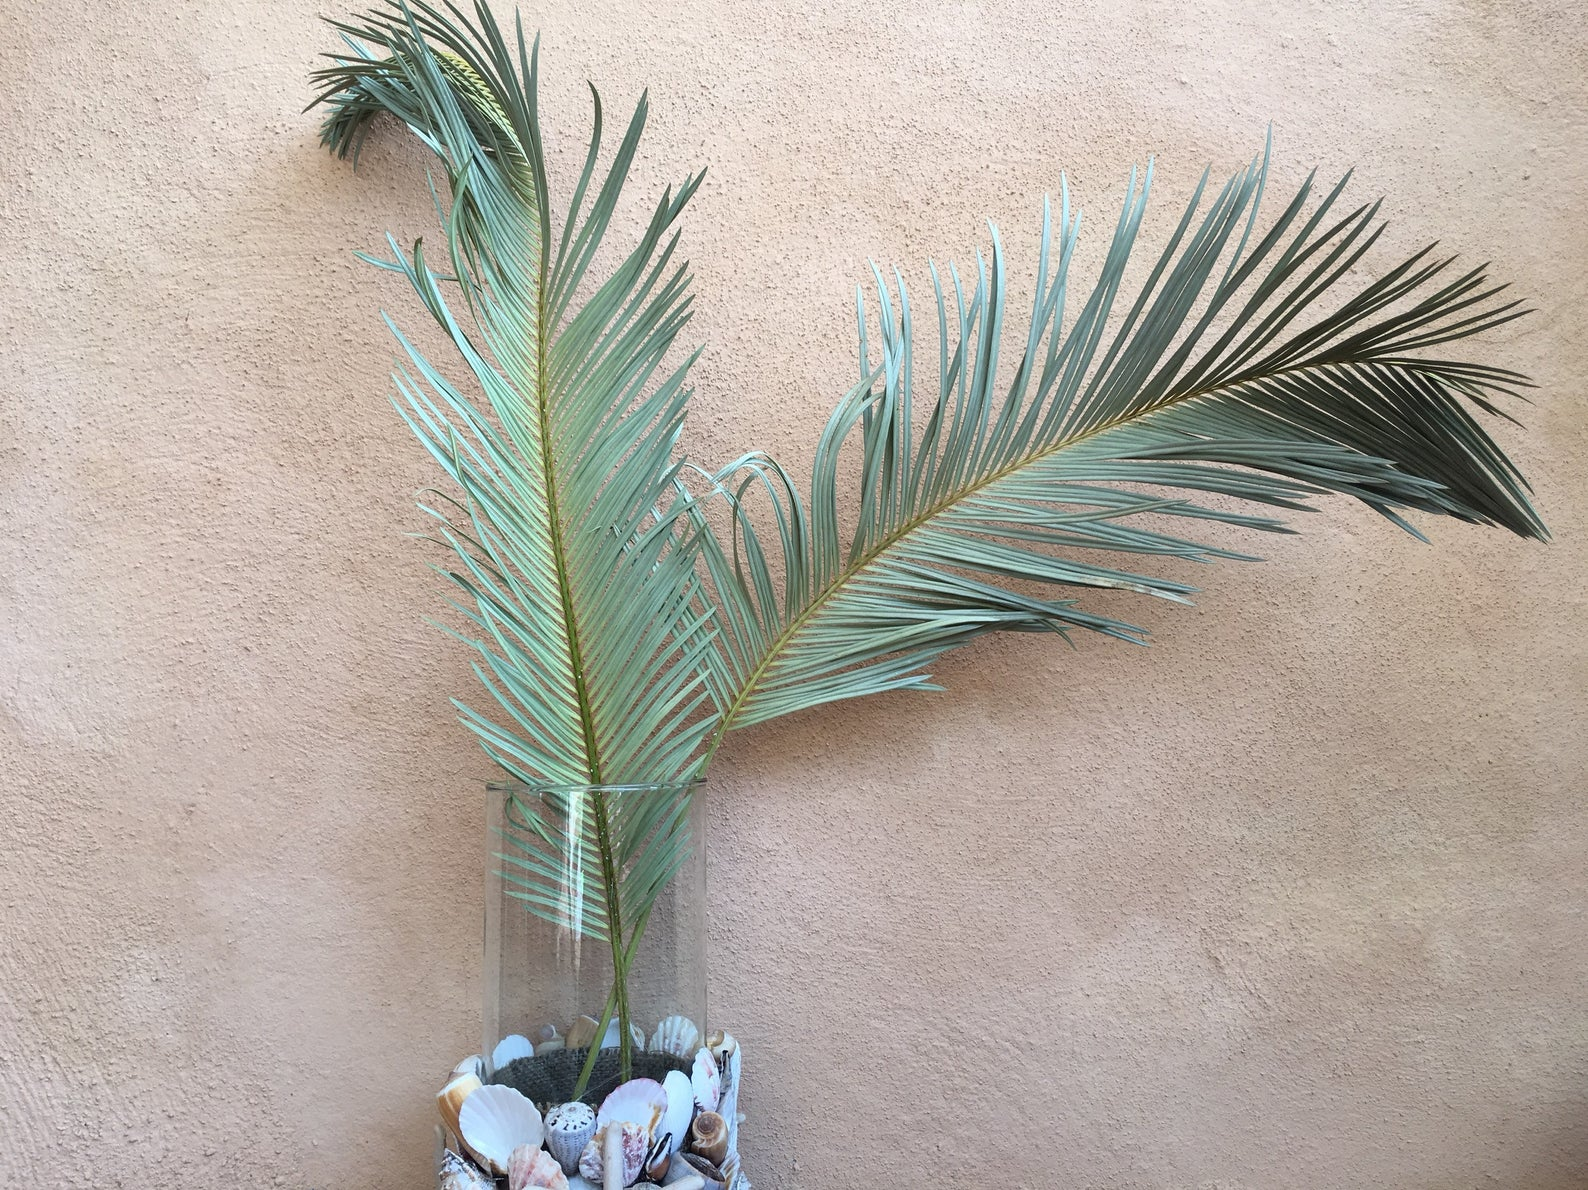 Dried-sago-palm-leaves-from-Natural-Dried-Decor-45624